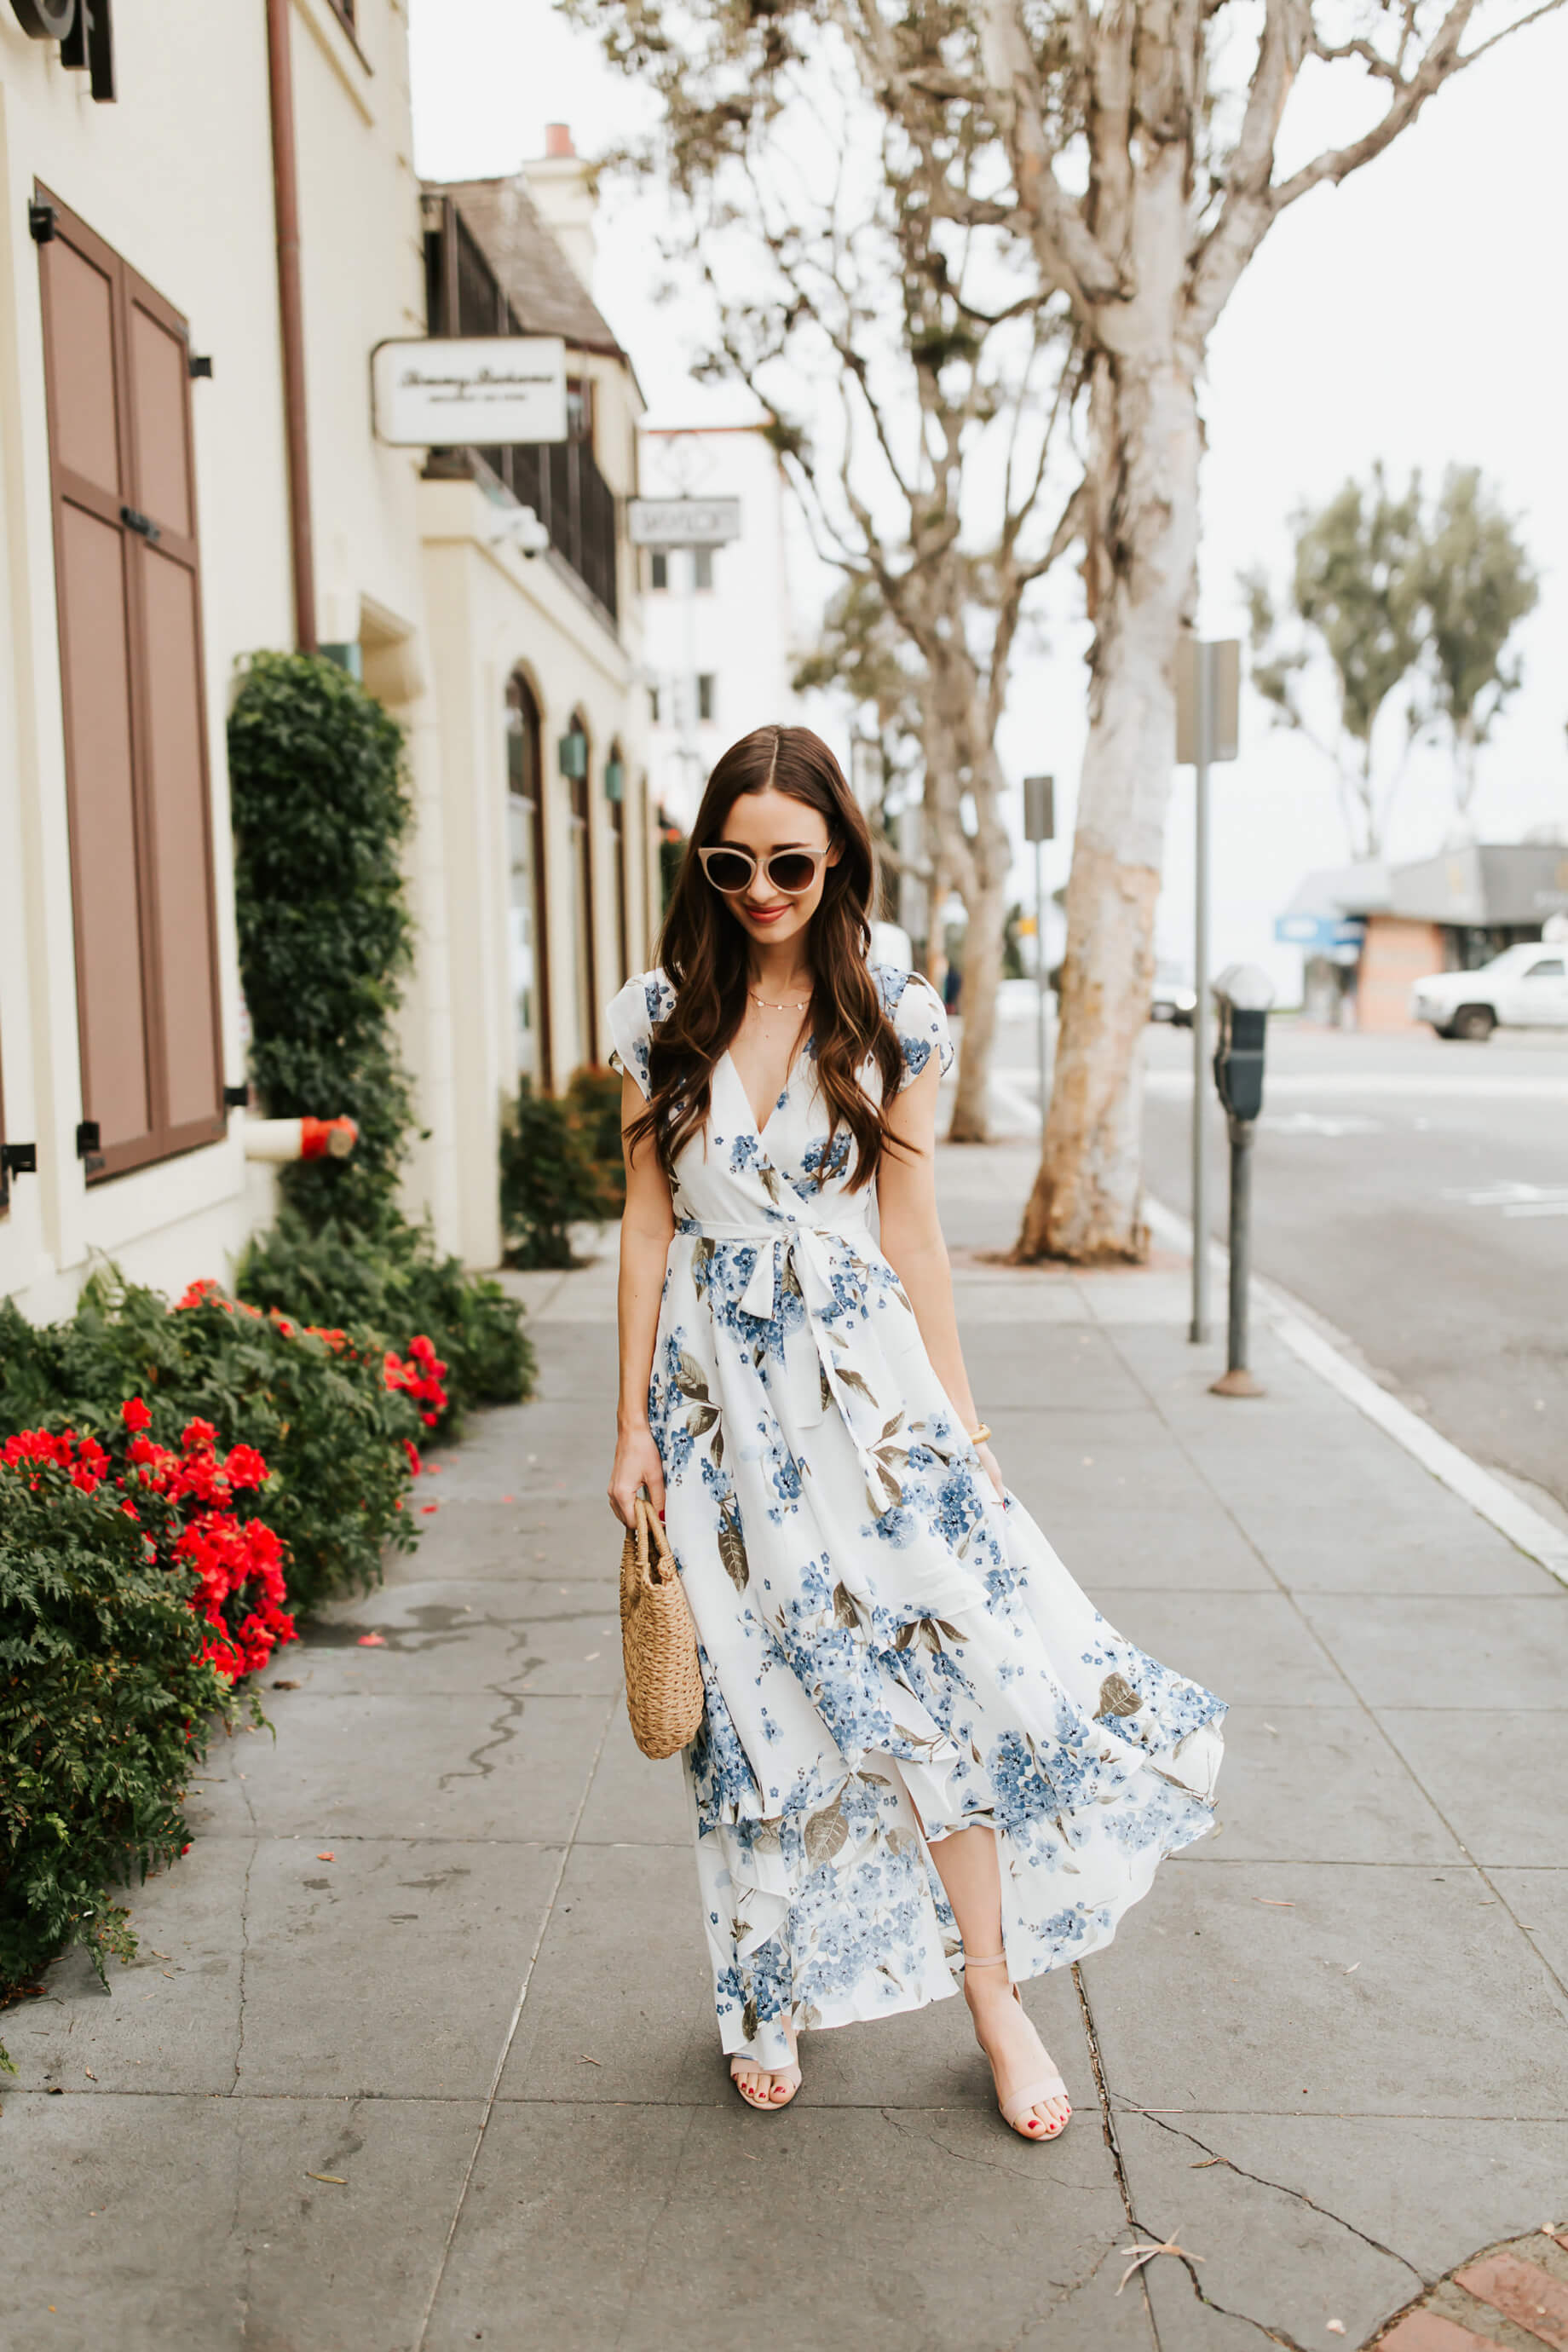 517896726c9 2 Must-Have Dresses for Spring